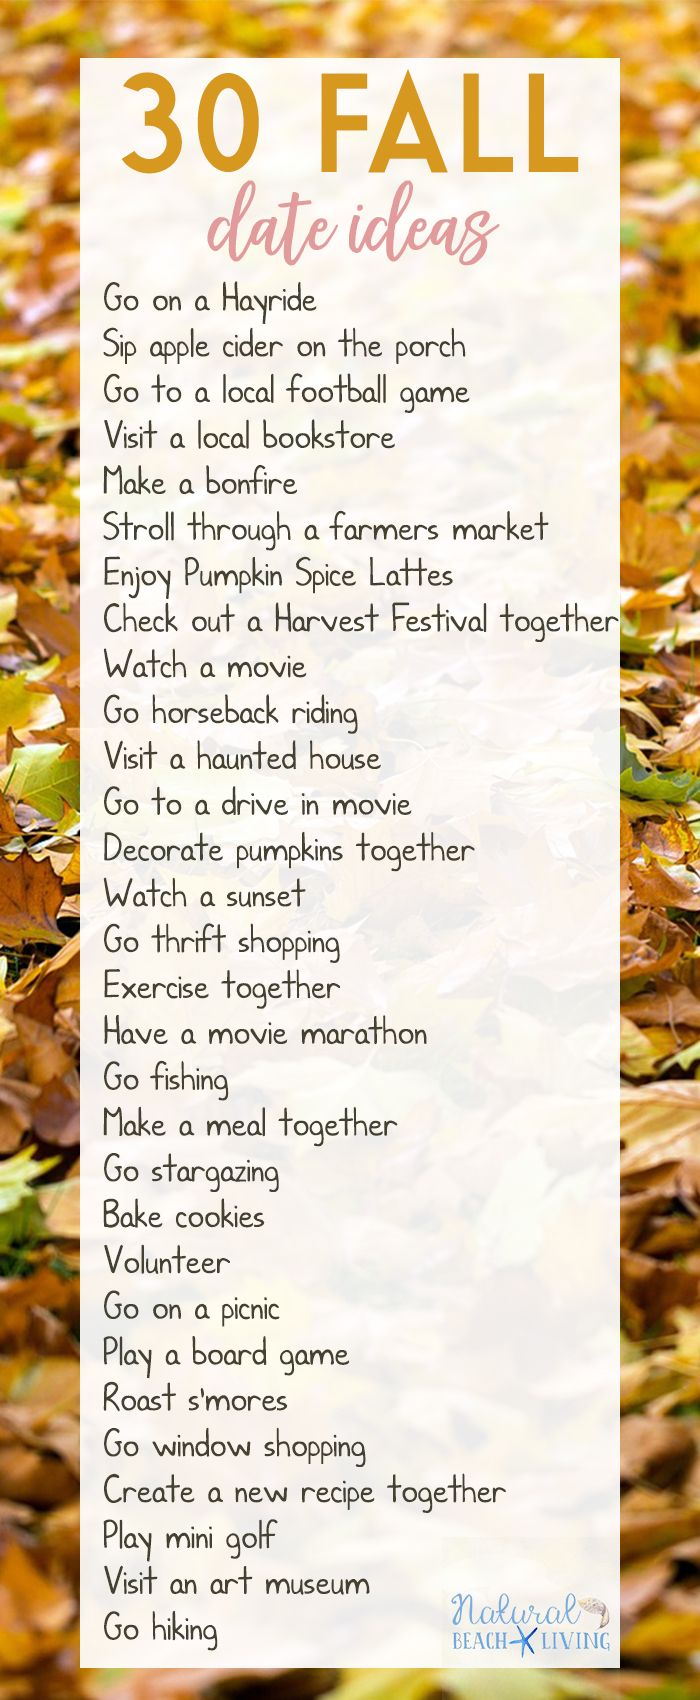 fun date night ideas for fall buckets couples and free